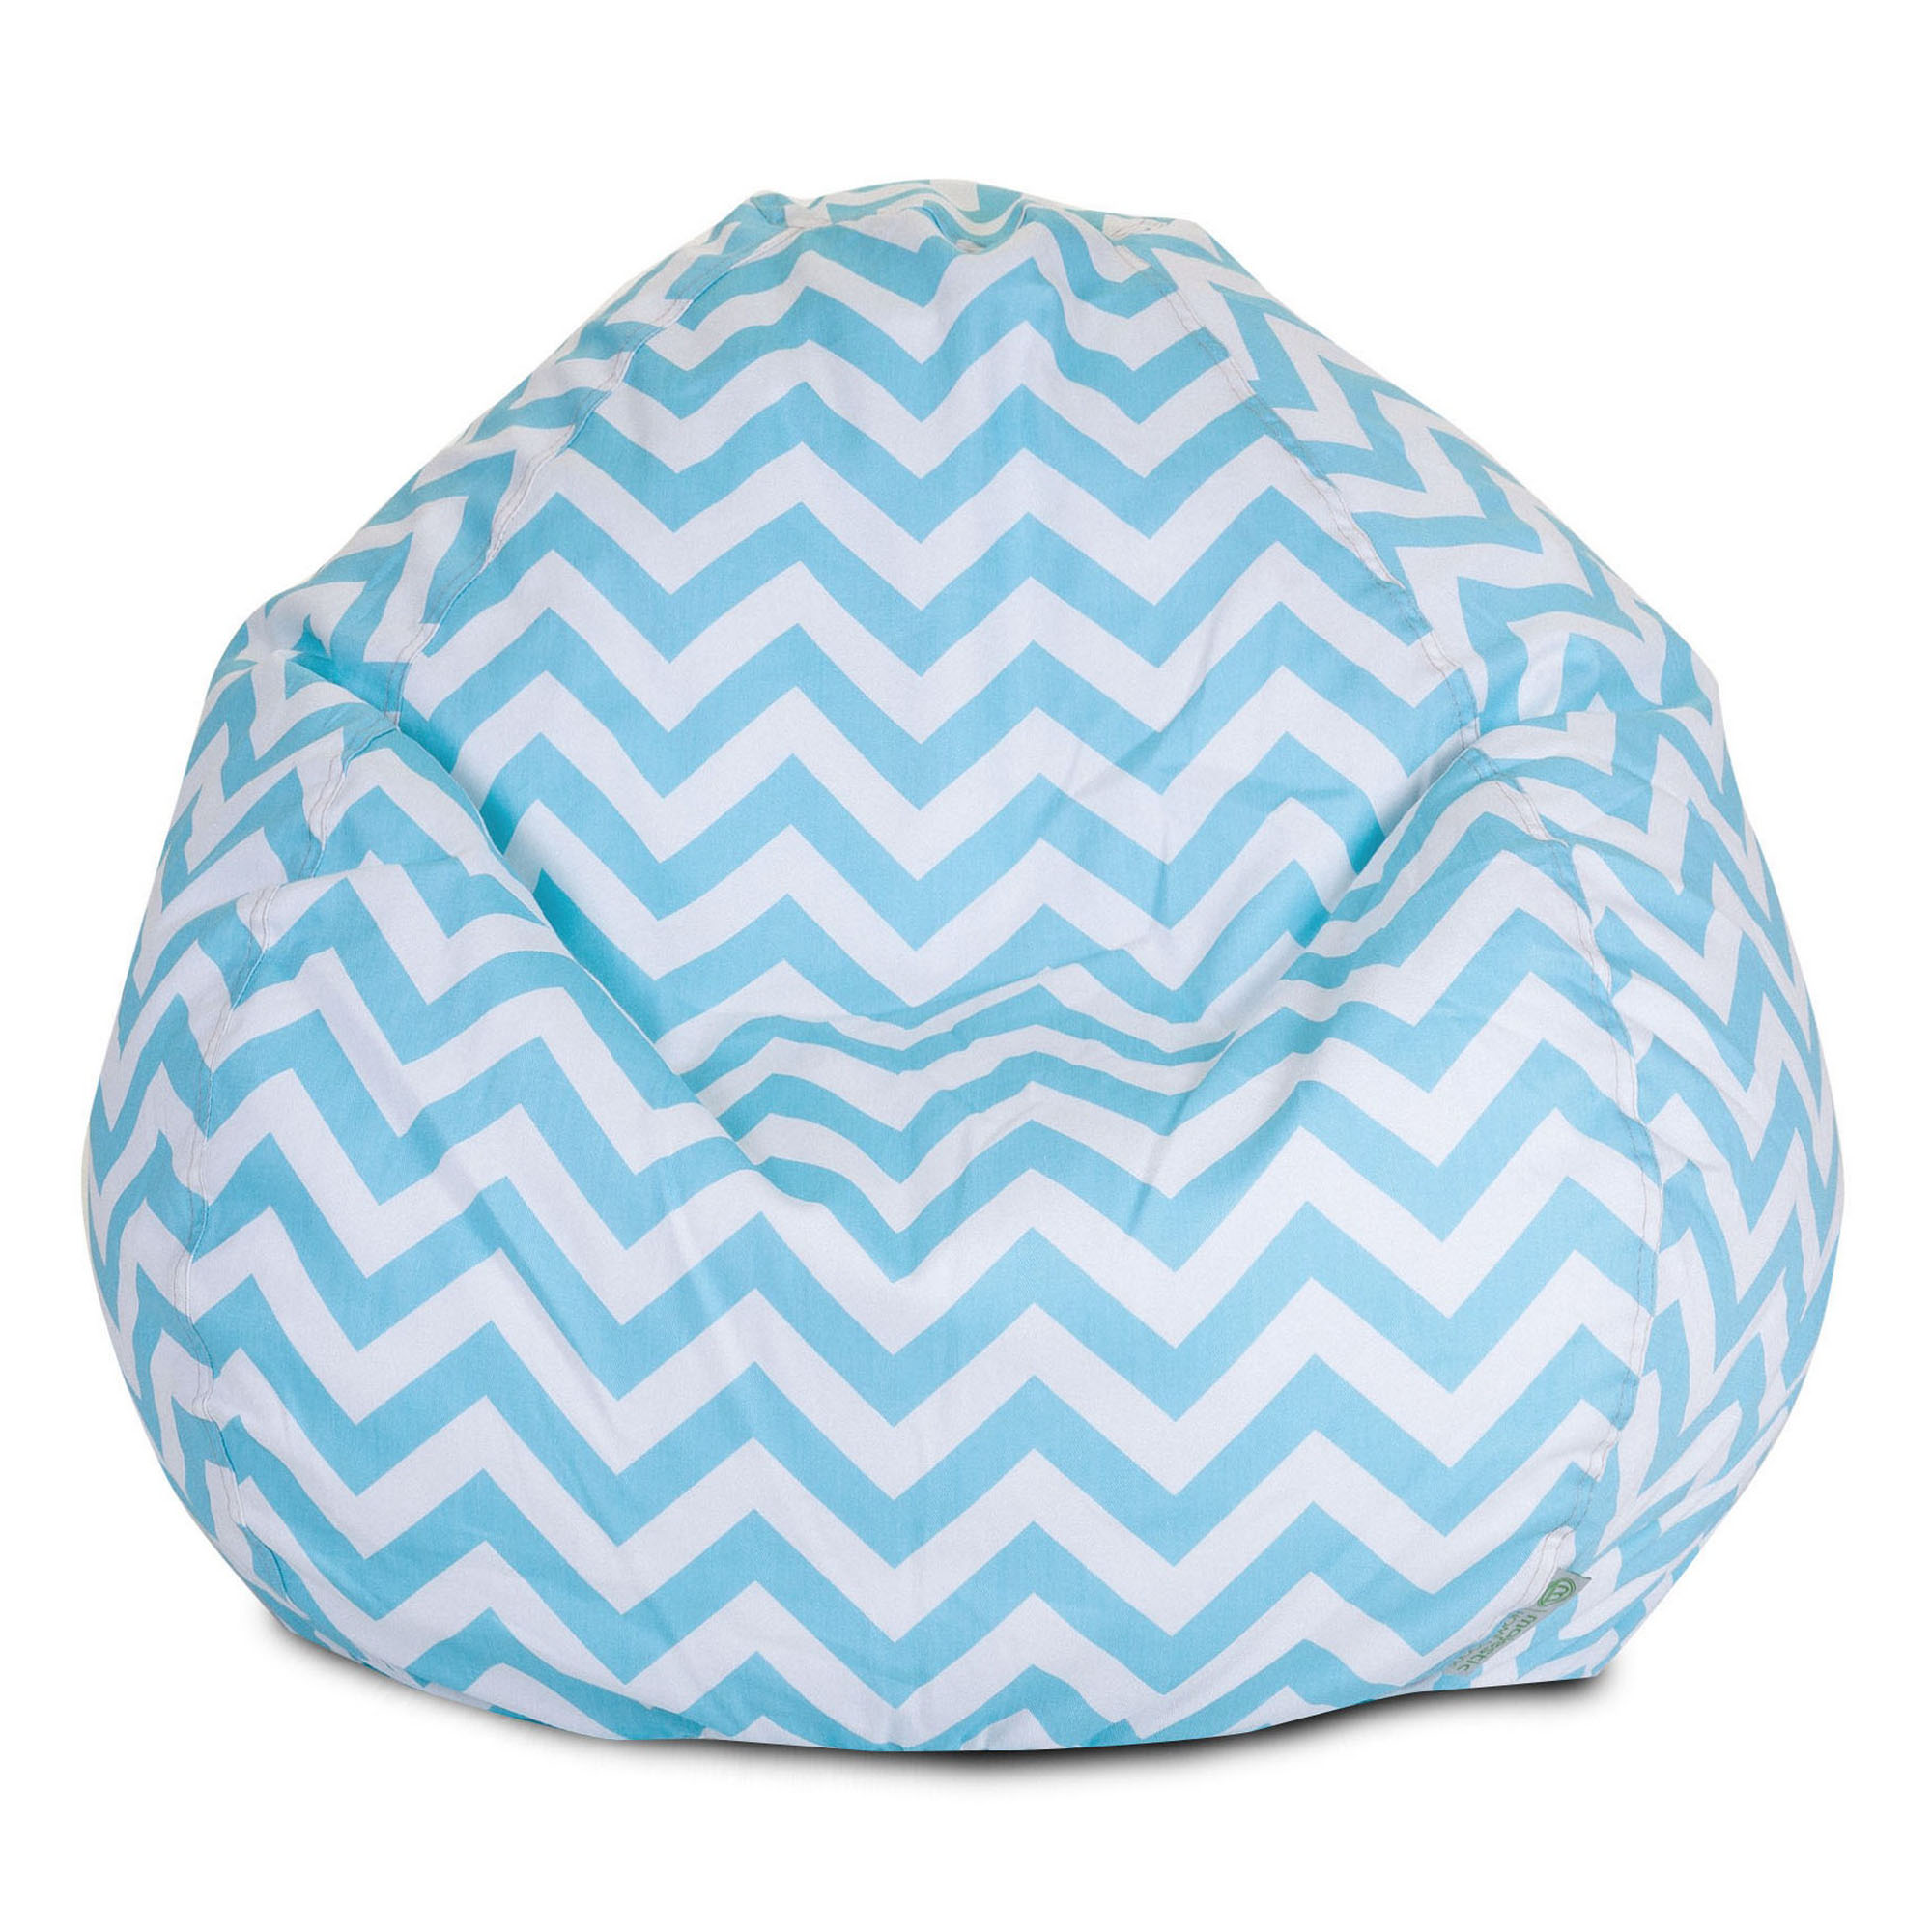 Tiffany Blue Chair Majestic Home Goods Indoor Tiffany Blue Chevron Classic Bean Bag Chair 28 In L X 28 In W X 22 In H Walmart